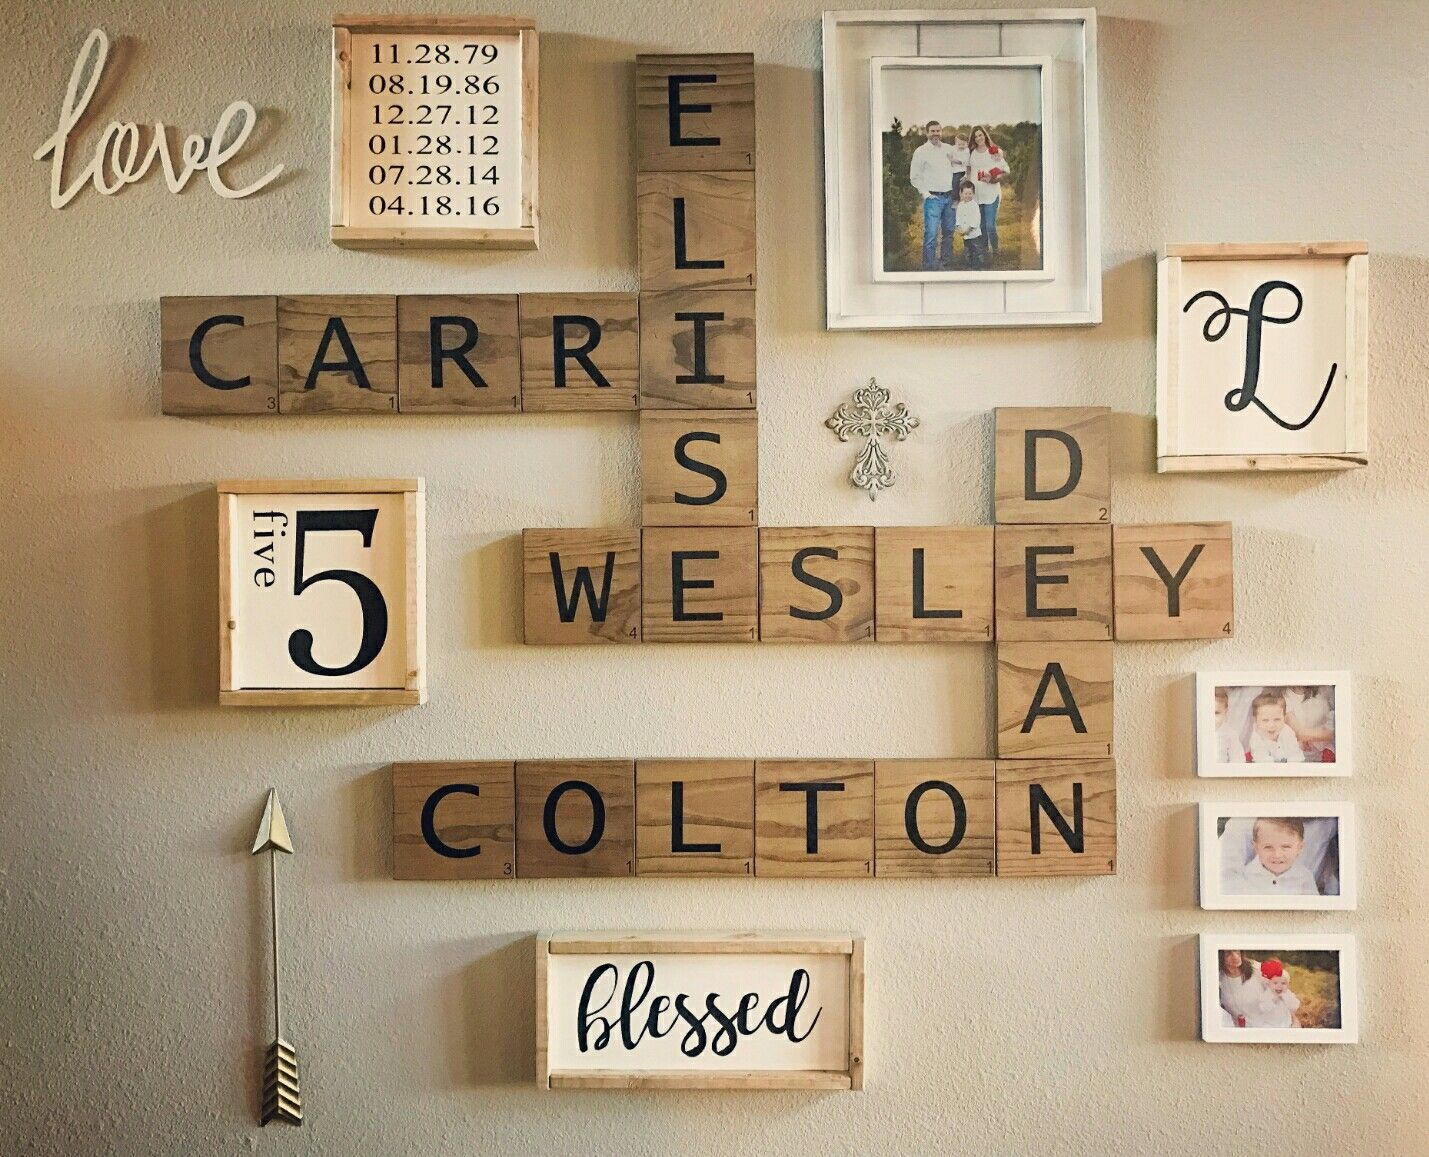 A customer shared her completed gallery wall with the custom signs